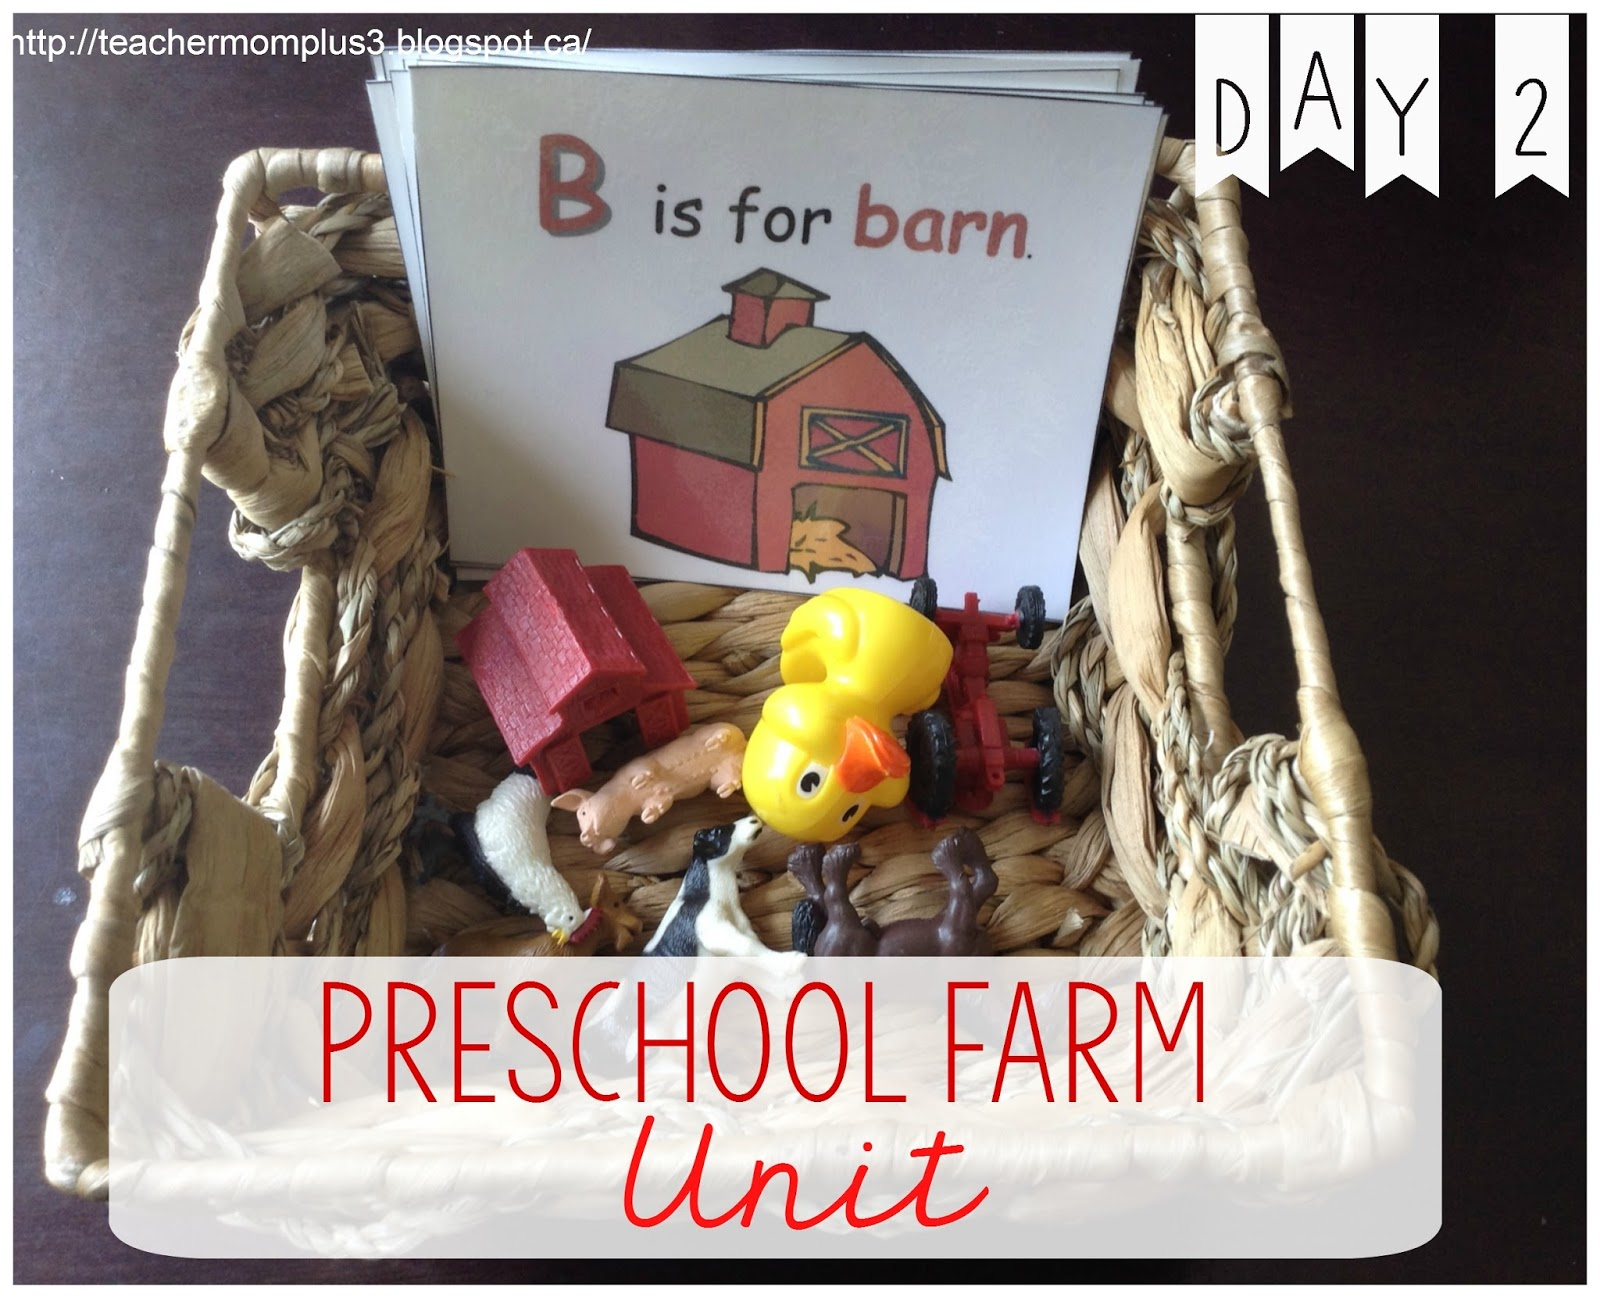 Teachermomplus3 Preschool Farm Activities Day 2